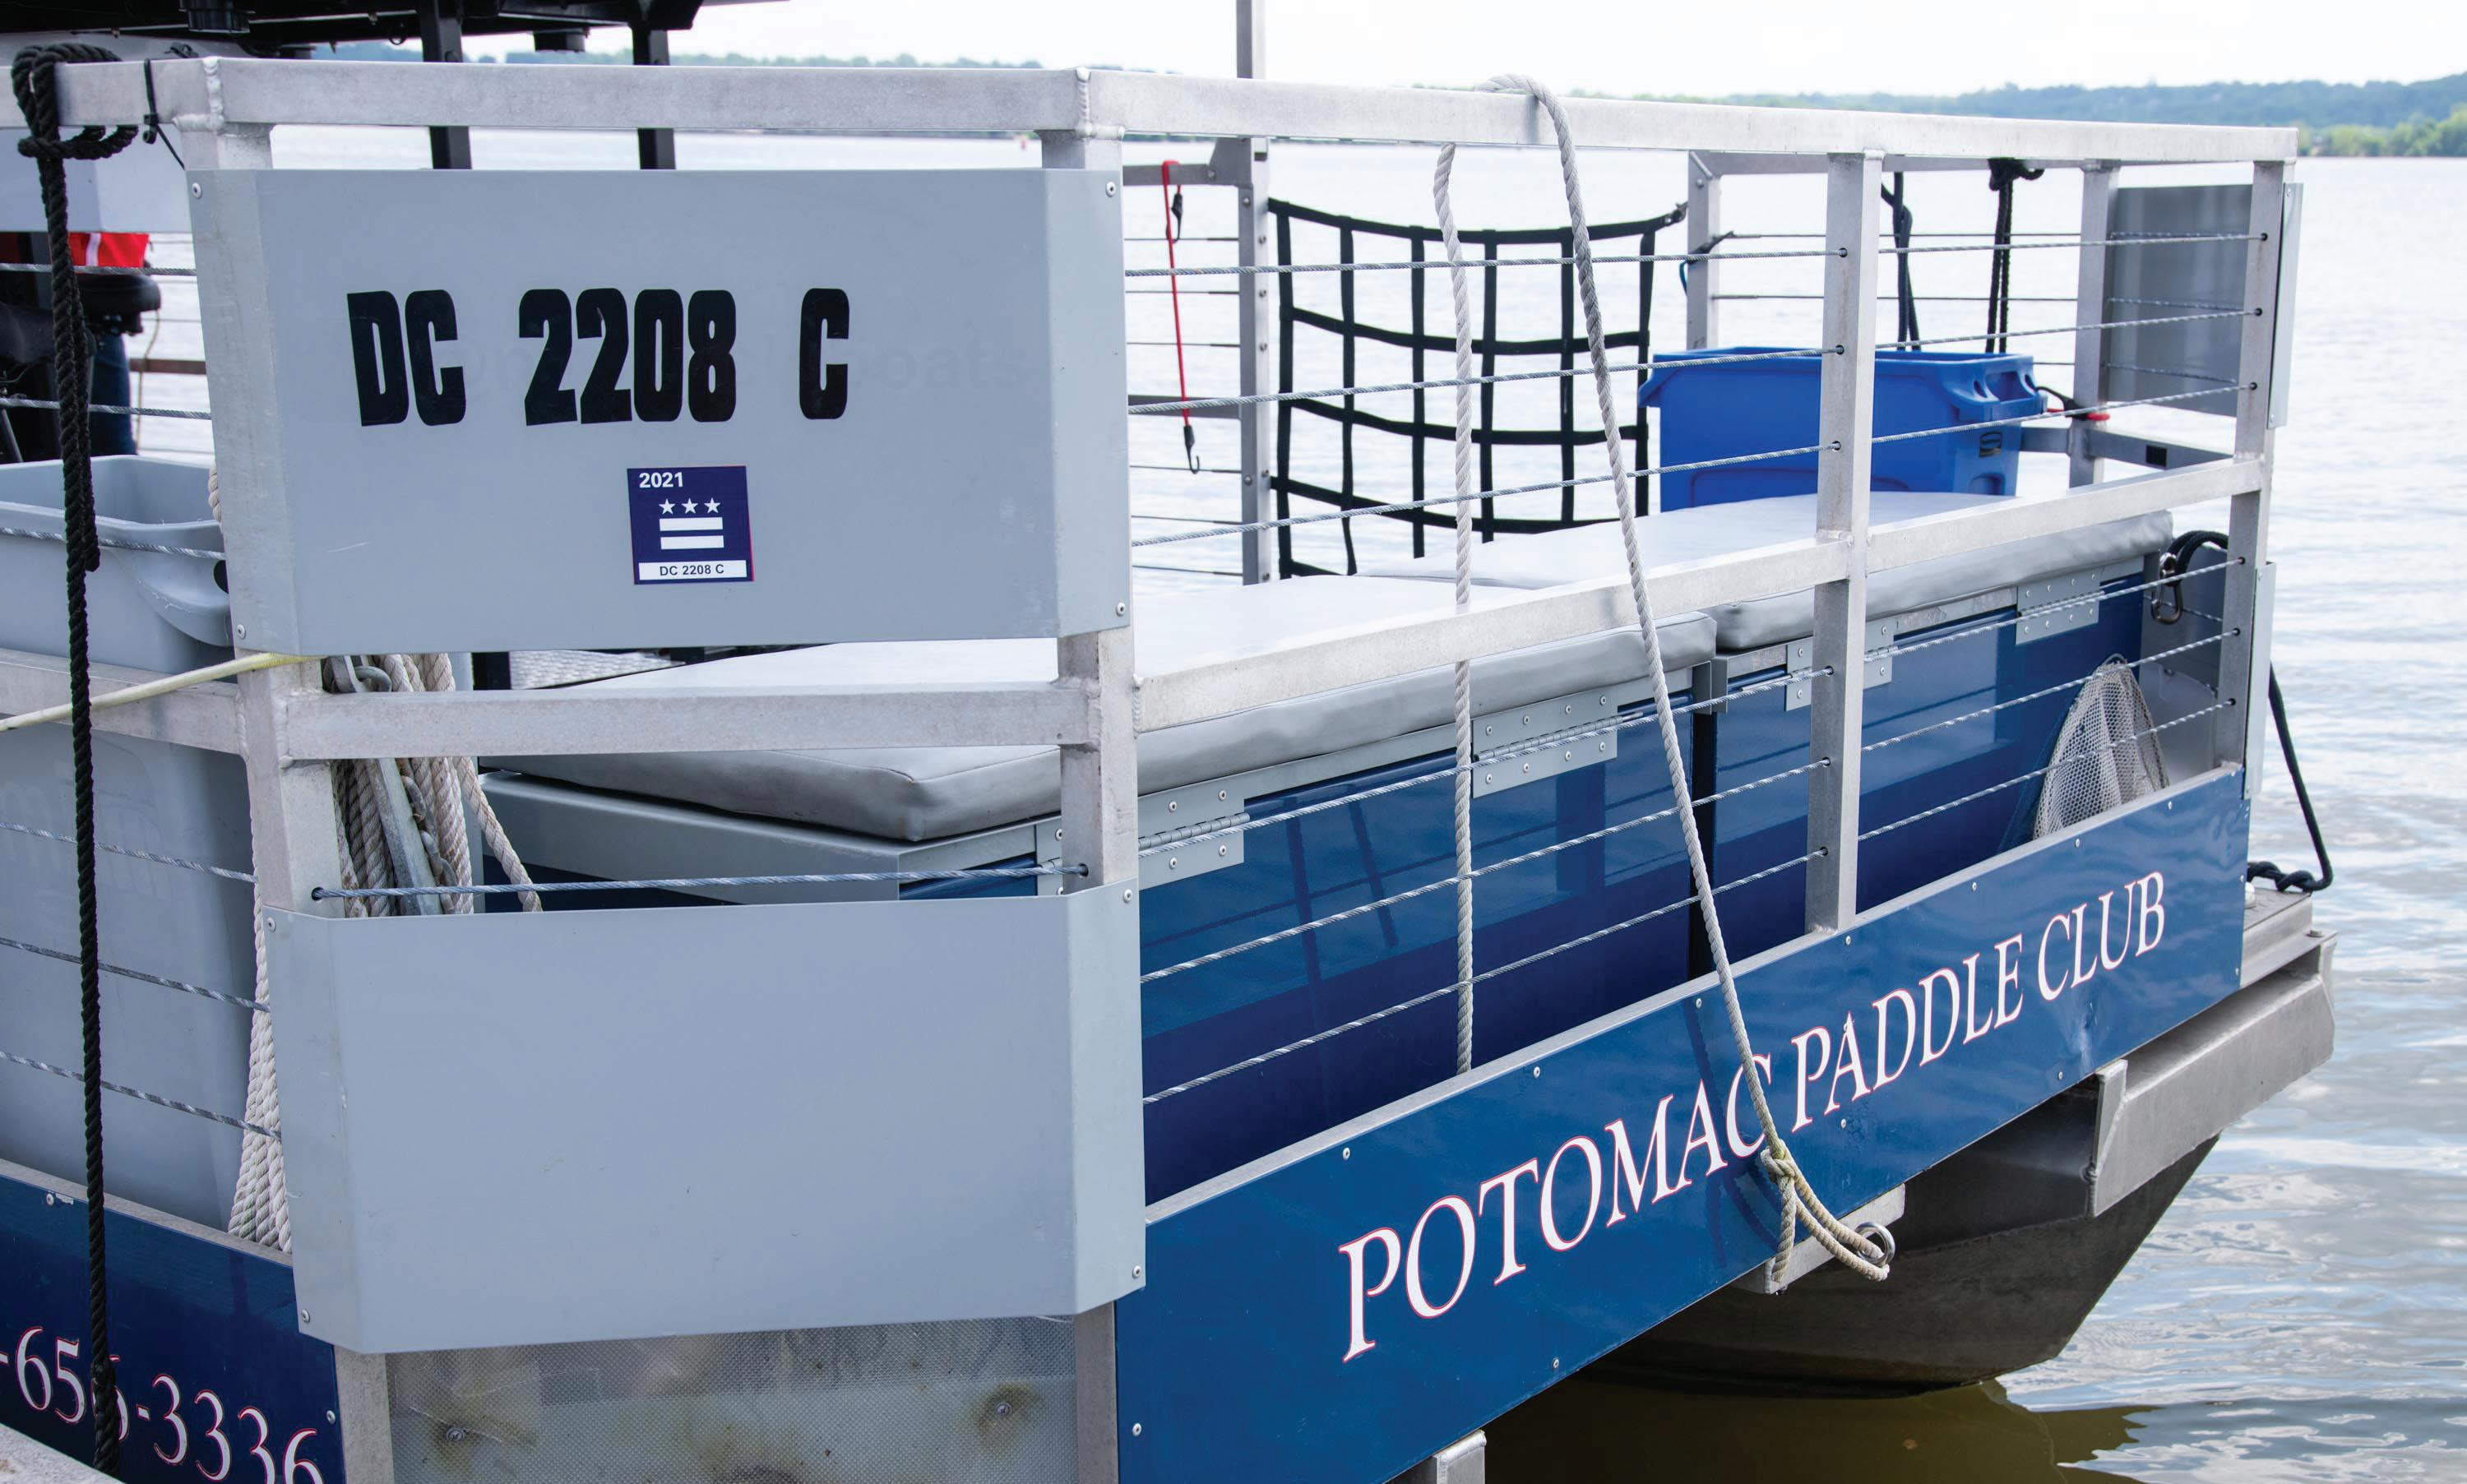 Page 32 of Alexandria Waterfront Welcomes Potomac Paddle Club